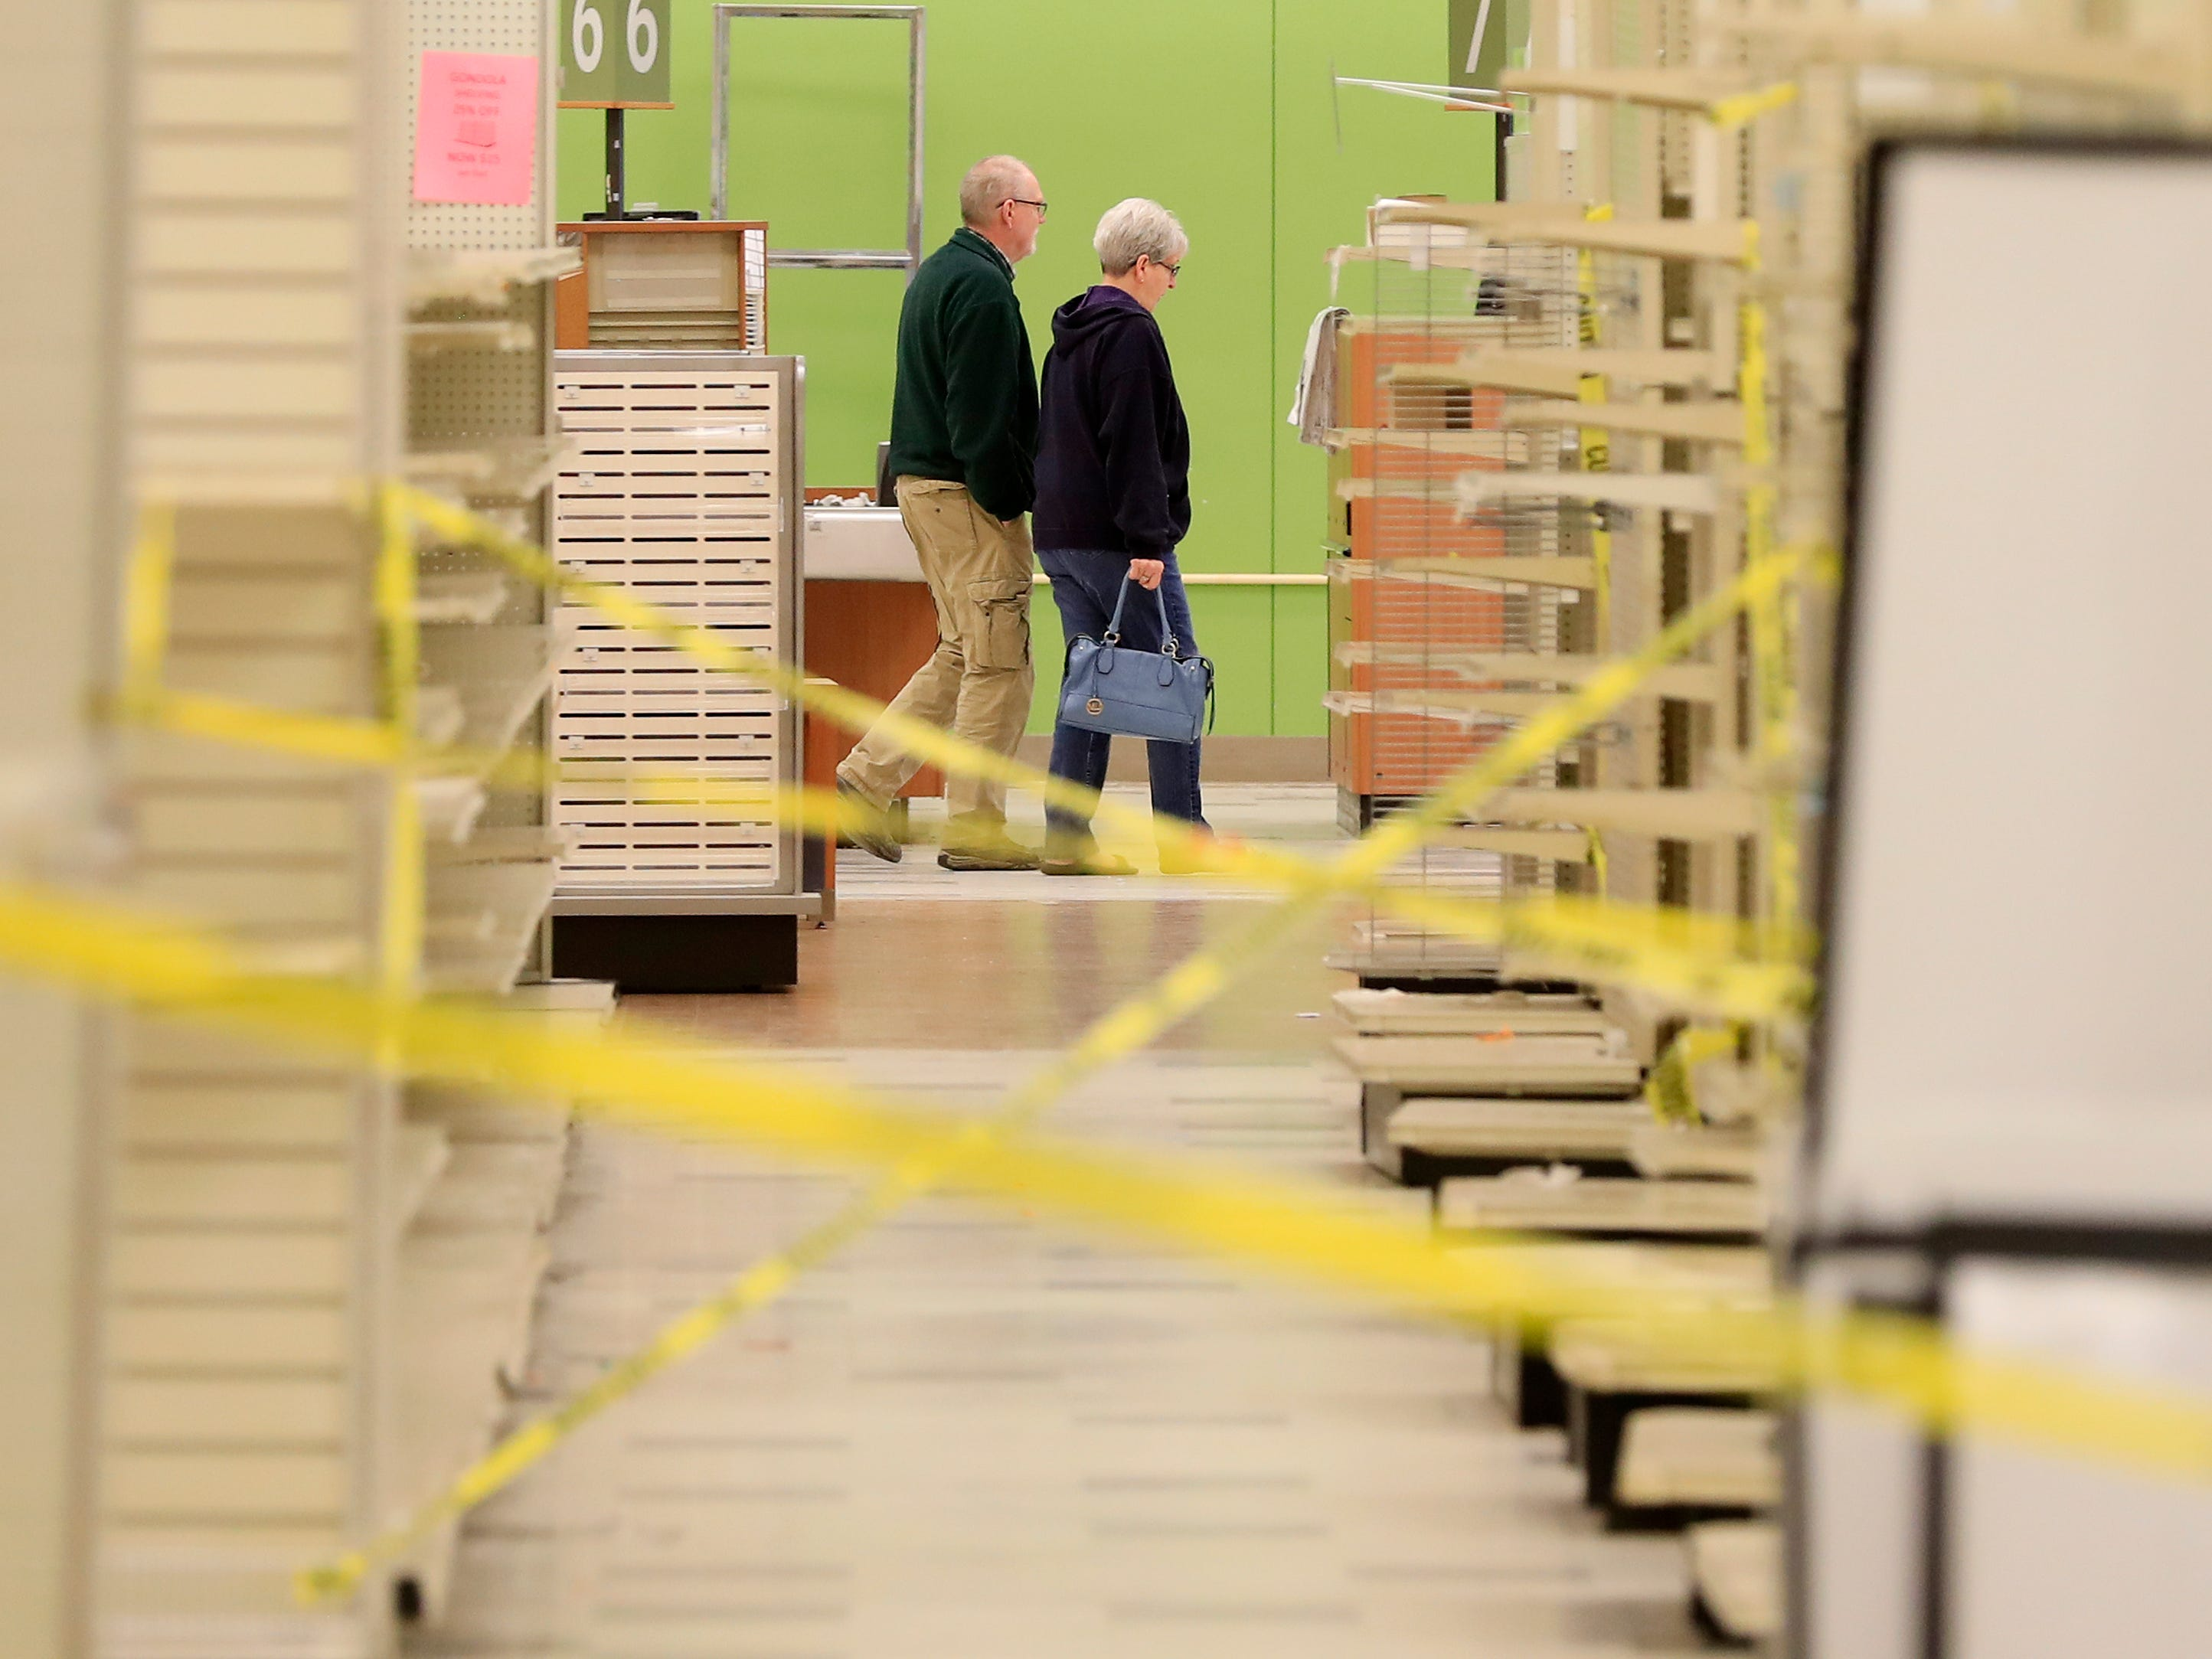 Customers walk past empty aisles on the final day of business at the Shopko store on Military Avenue in Green Bay. The store was the company's first.